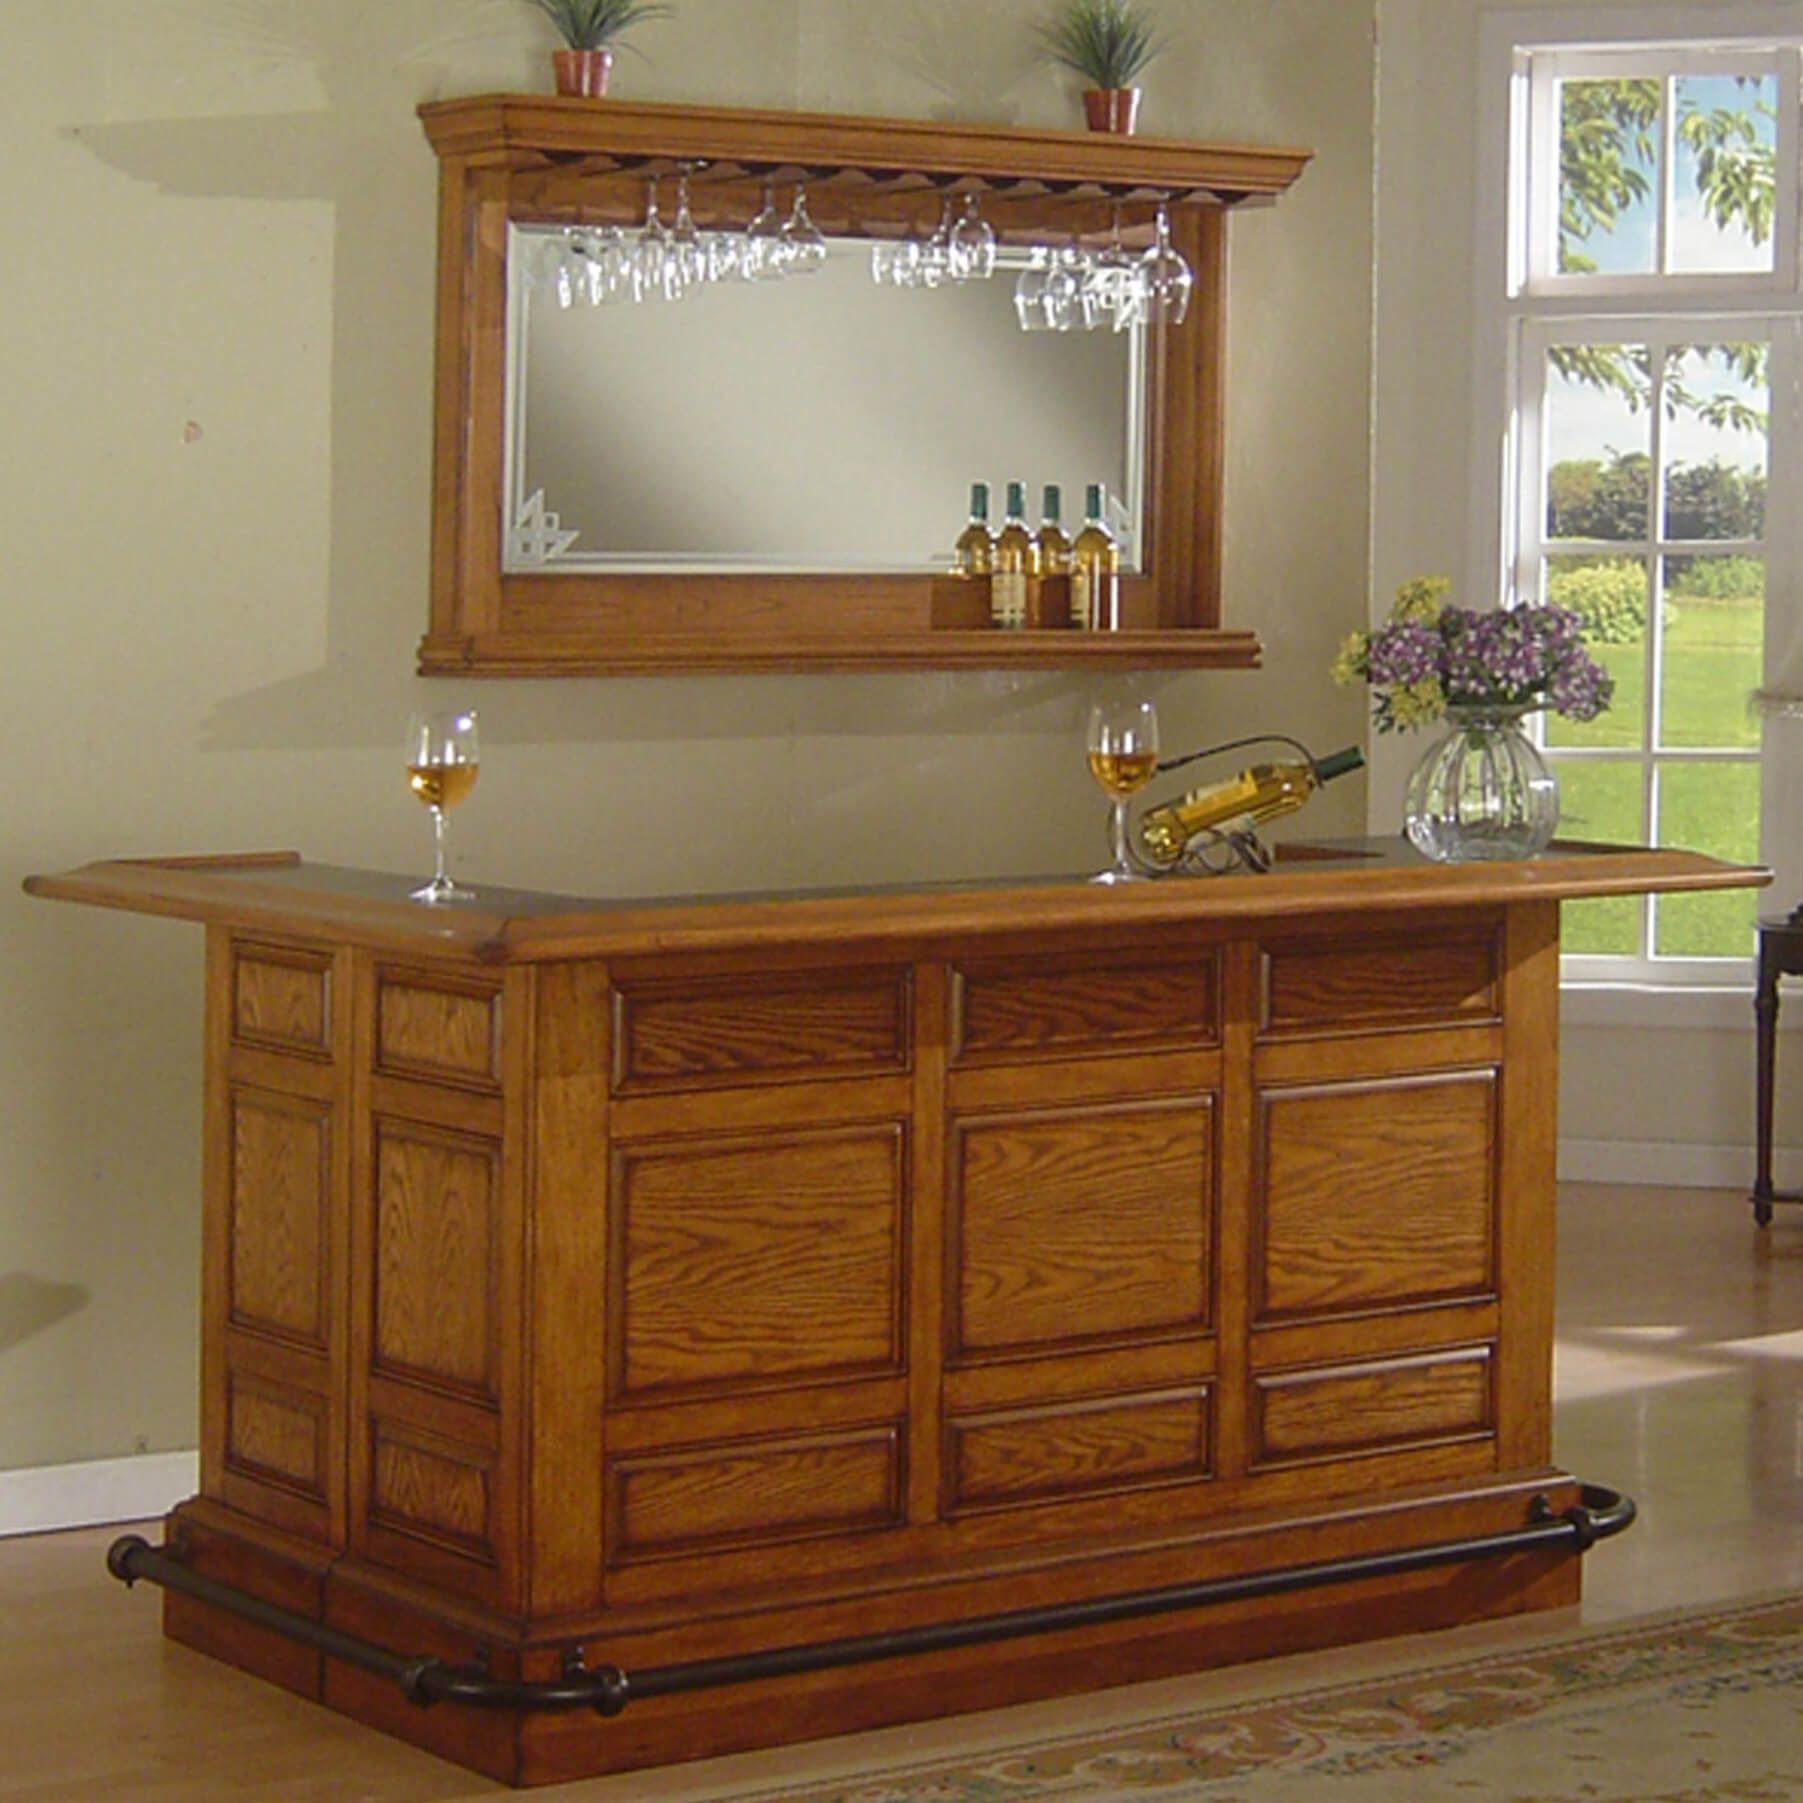 30 Top Home Bar Cabinets  Sets   Wine Bars  ELEGANT   FUN. 30 Top Home Bar Cabinets  Sets   Wine Bars  ELEGANT   FUN    Solid